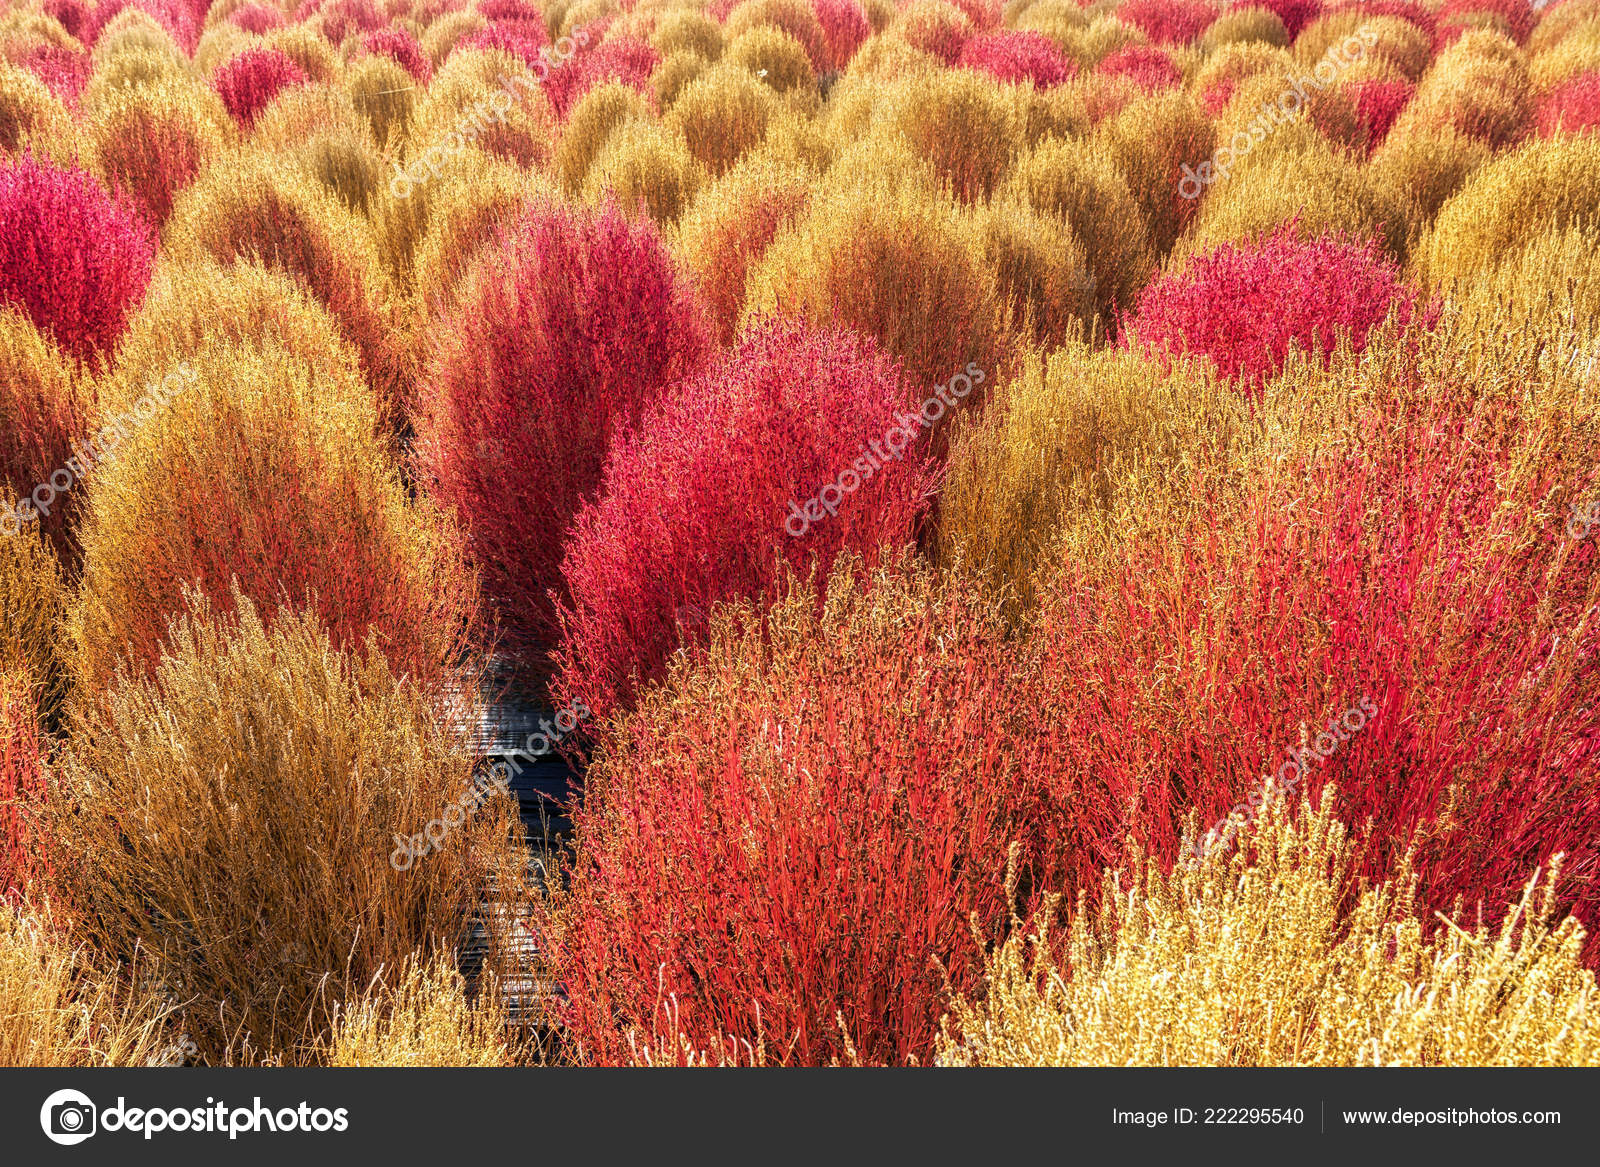 Kochia Scoparia Grass Kochia Scoparia Blooming Autumn Season